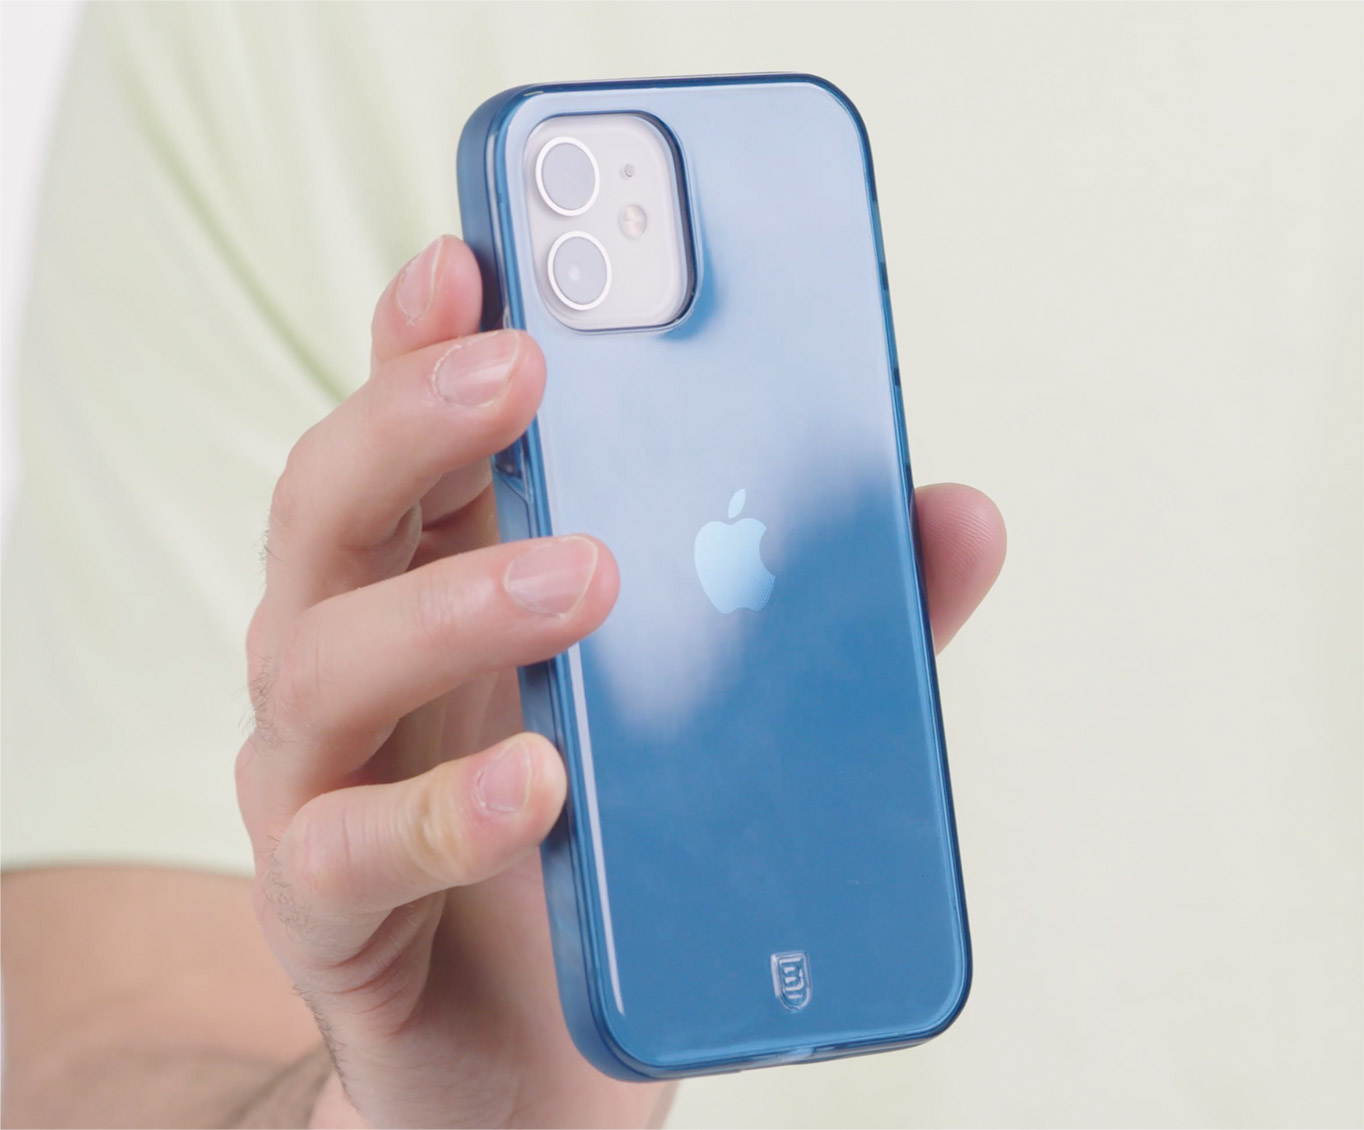 BodyGuardz phone case showing off our bold protection.